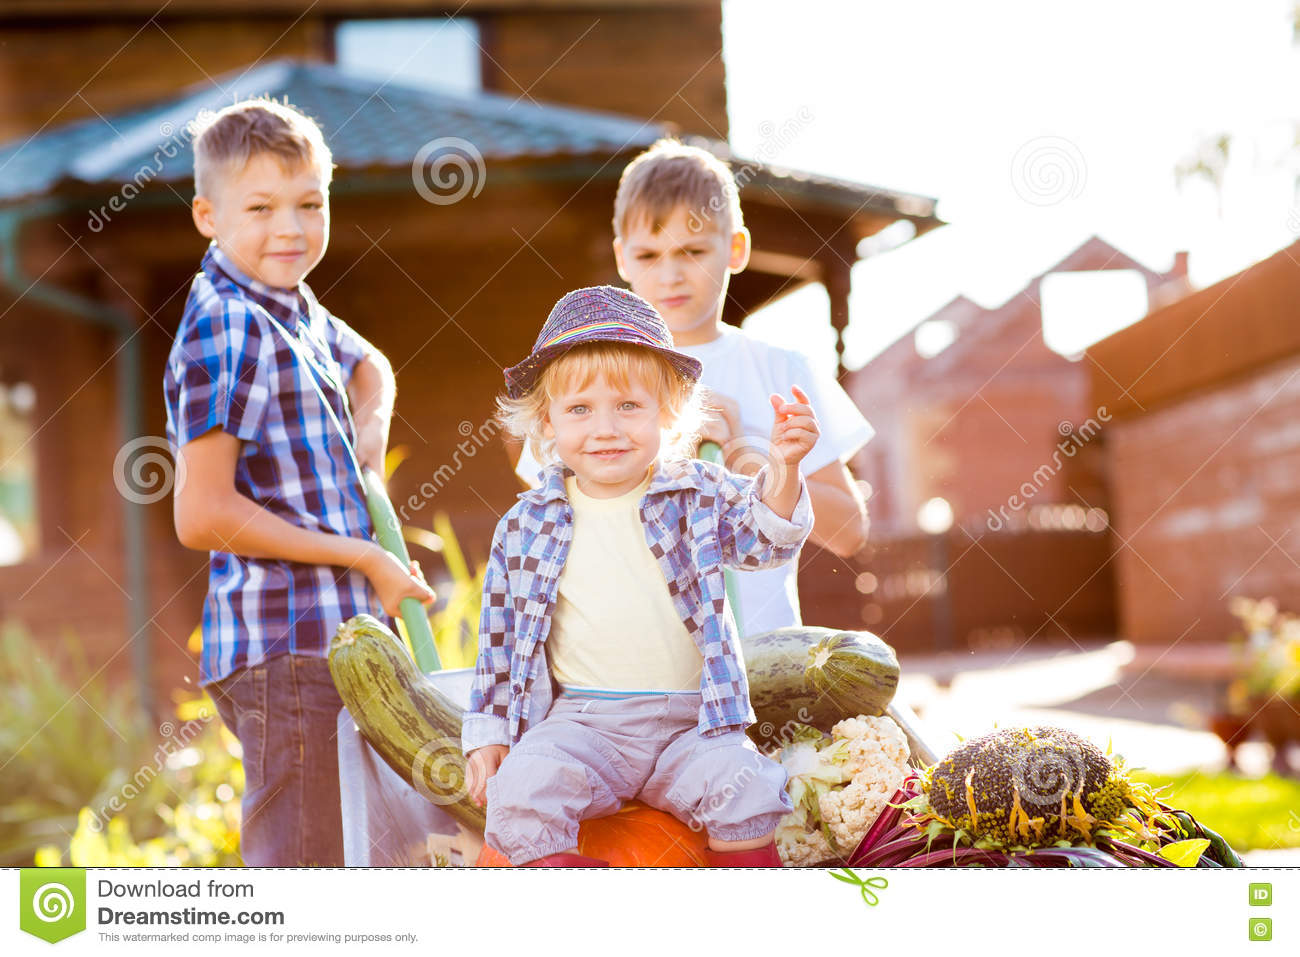 royalty free stock photo download three kids brothers as gardeners